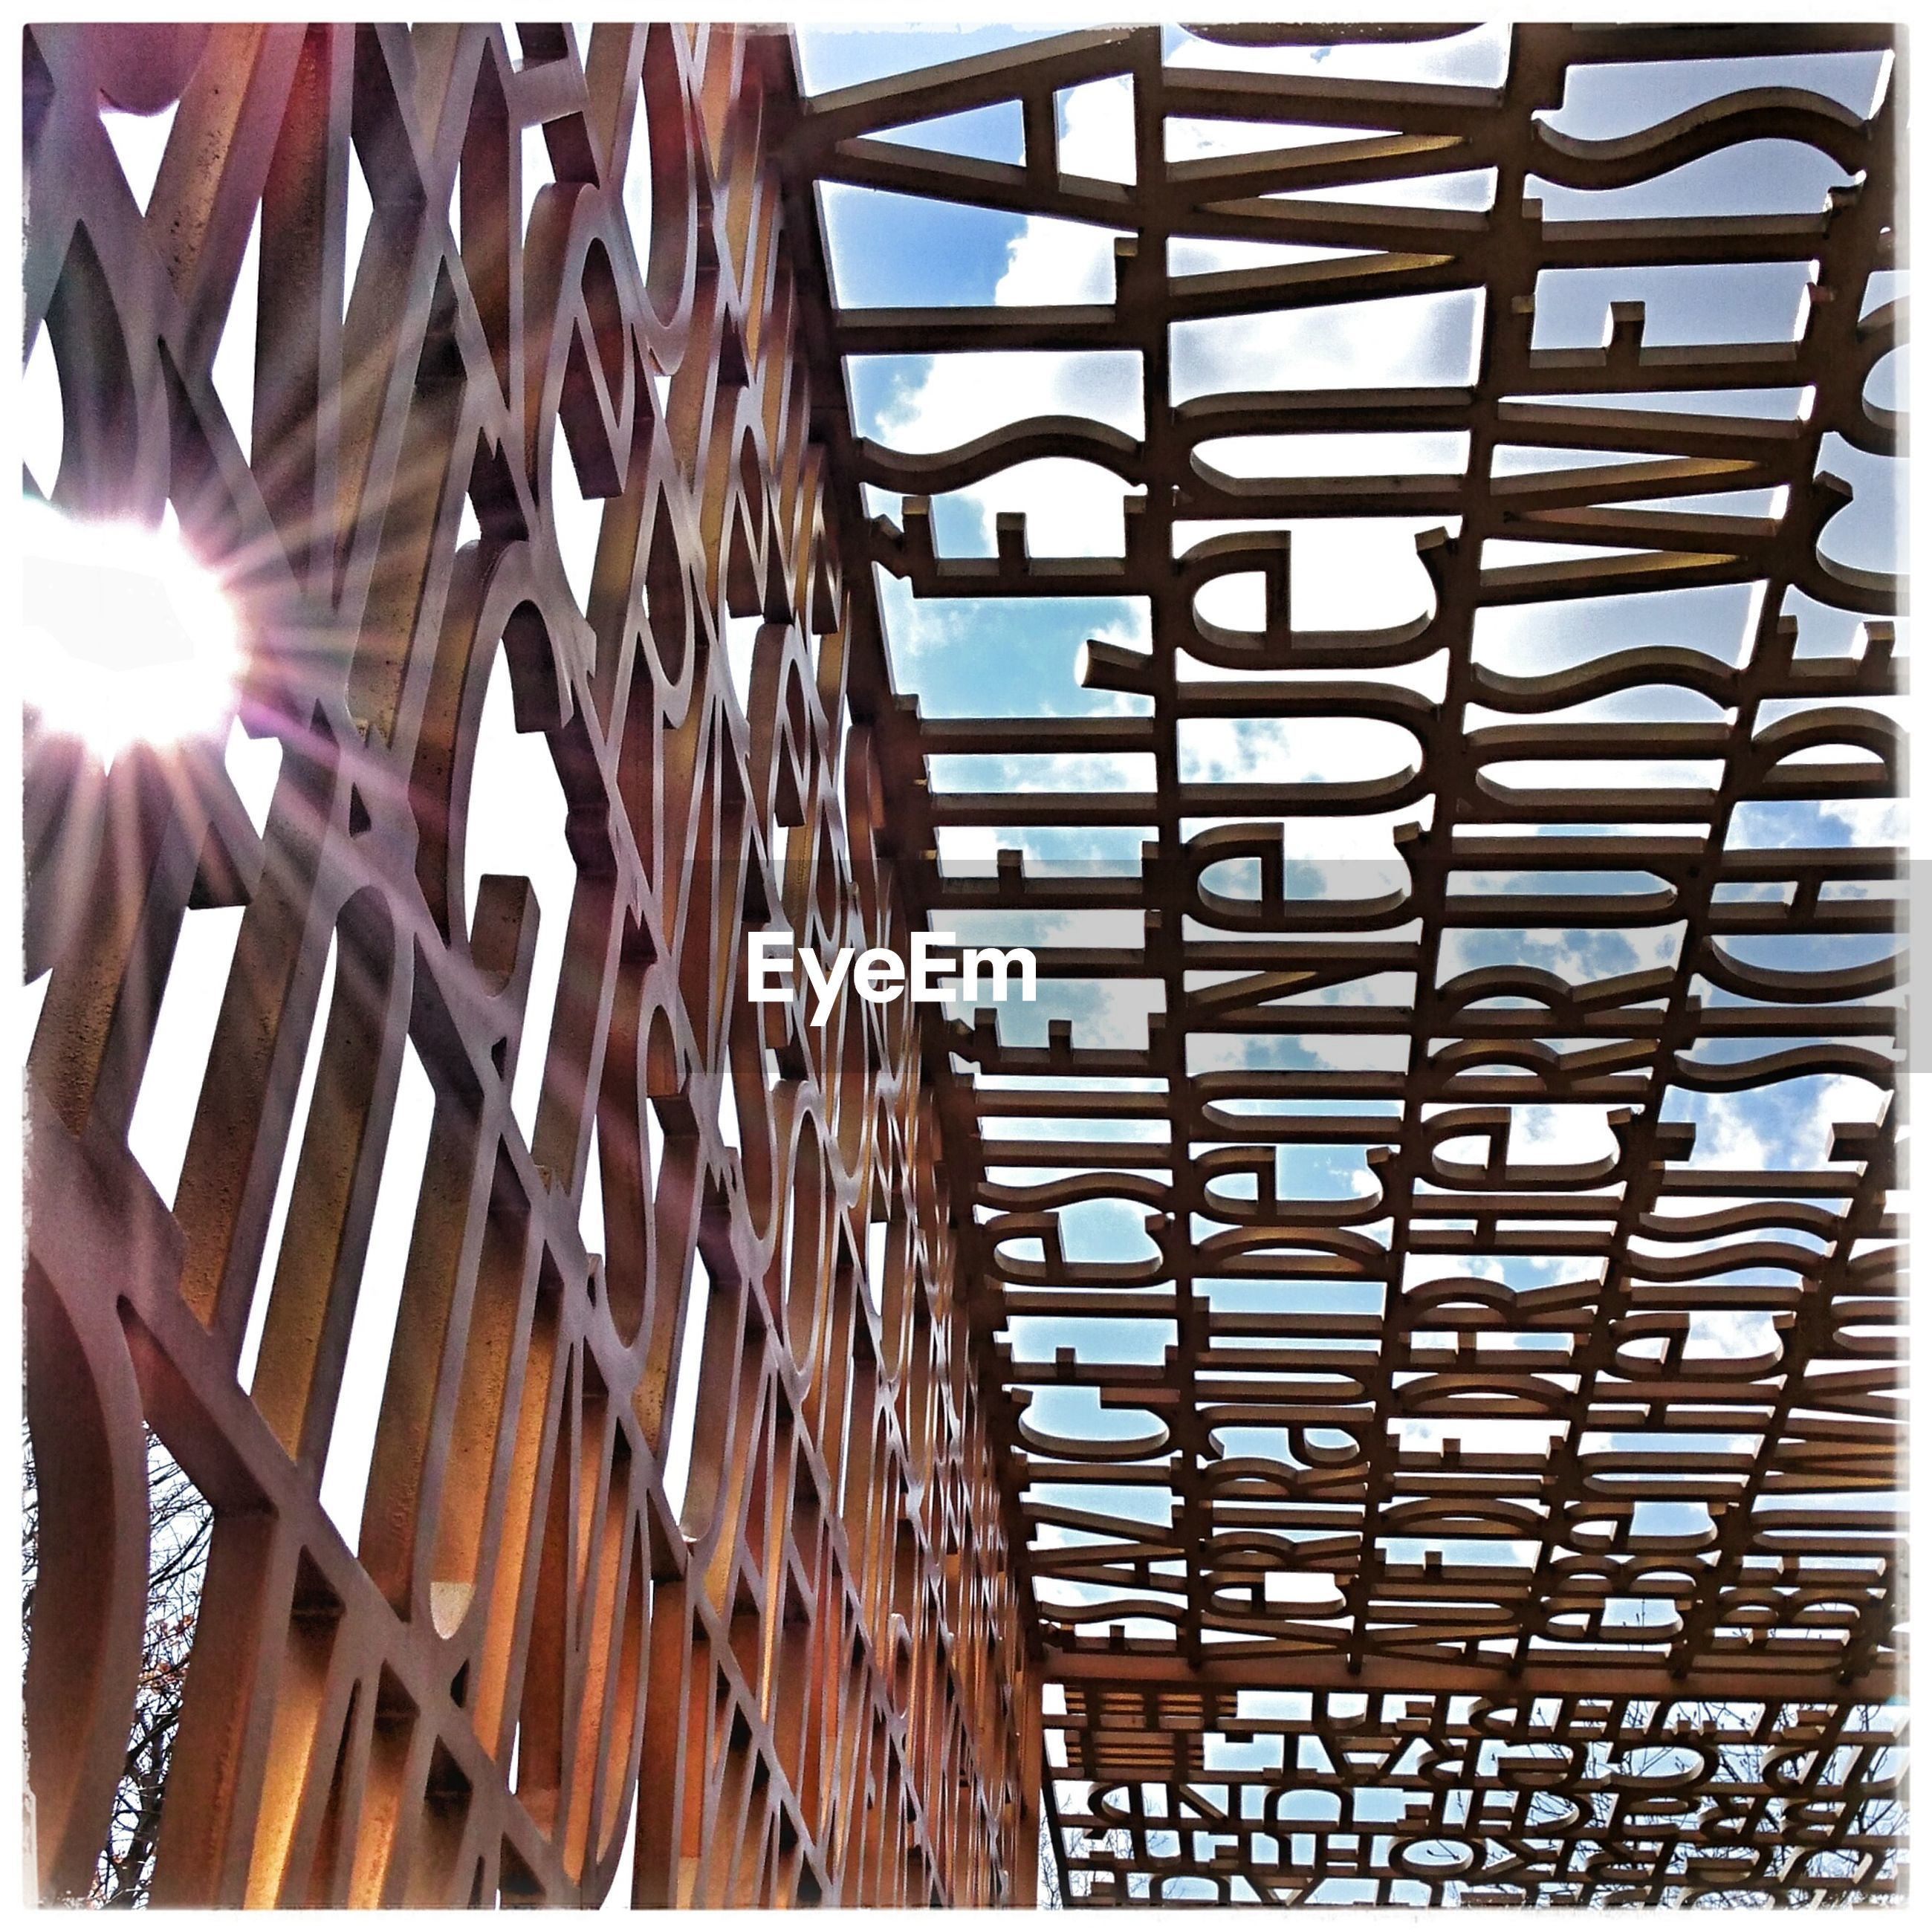 metal, built structure, low angle view, sunlight, architecture, railing, pattern, metallic, sunbeam, indoors, day, repetition, wood - material, in a row, shadow, no people, sunny, lens flare, ceiling